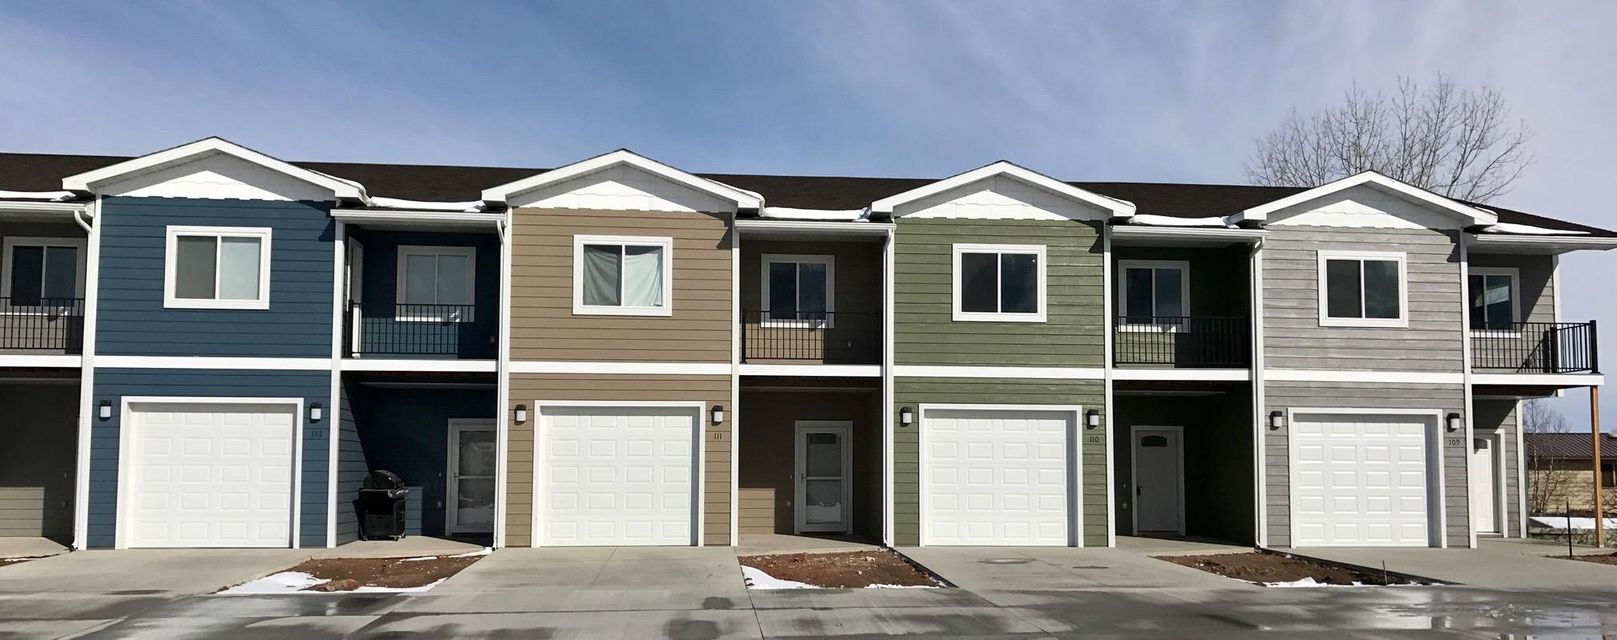 101 Trails West Circle,Ranchester,Wyoming 82839,4 Bedrooms Bedrooms,2.5 BathroomsBathrooms,Residential,Trails West,18-622